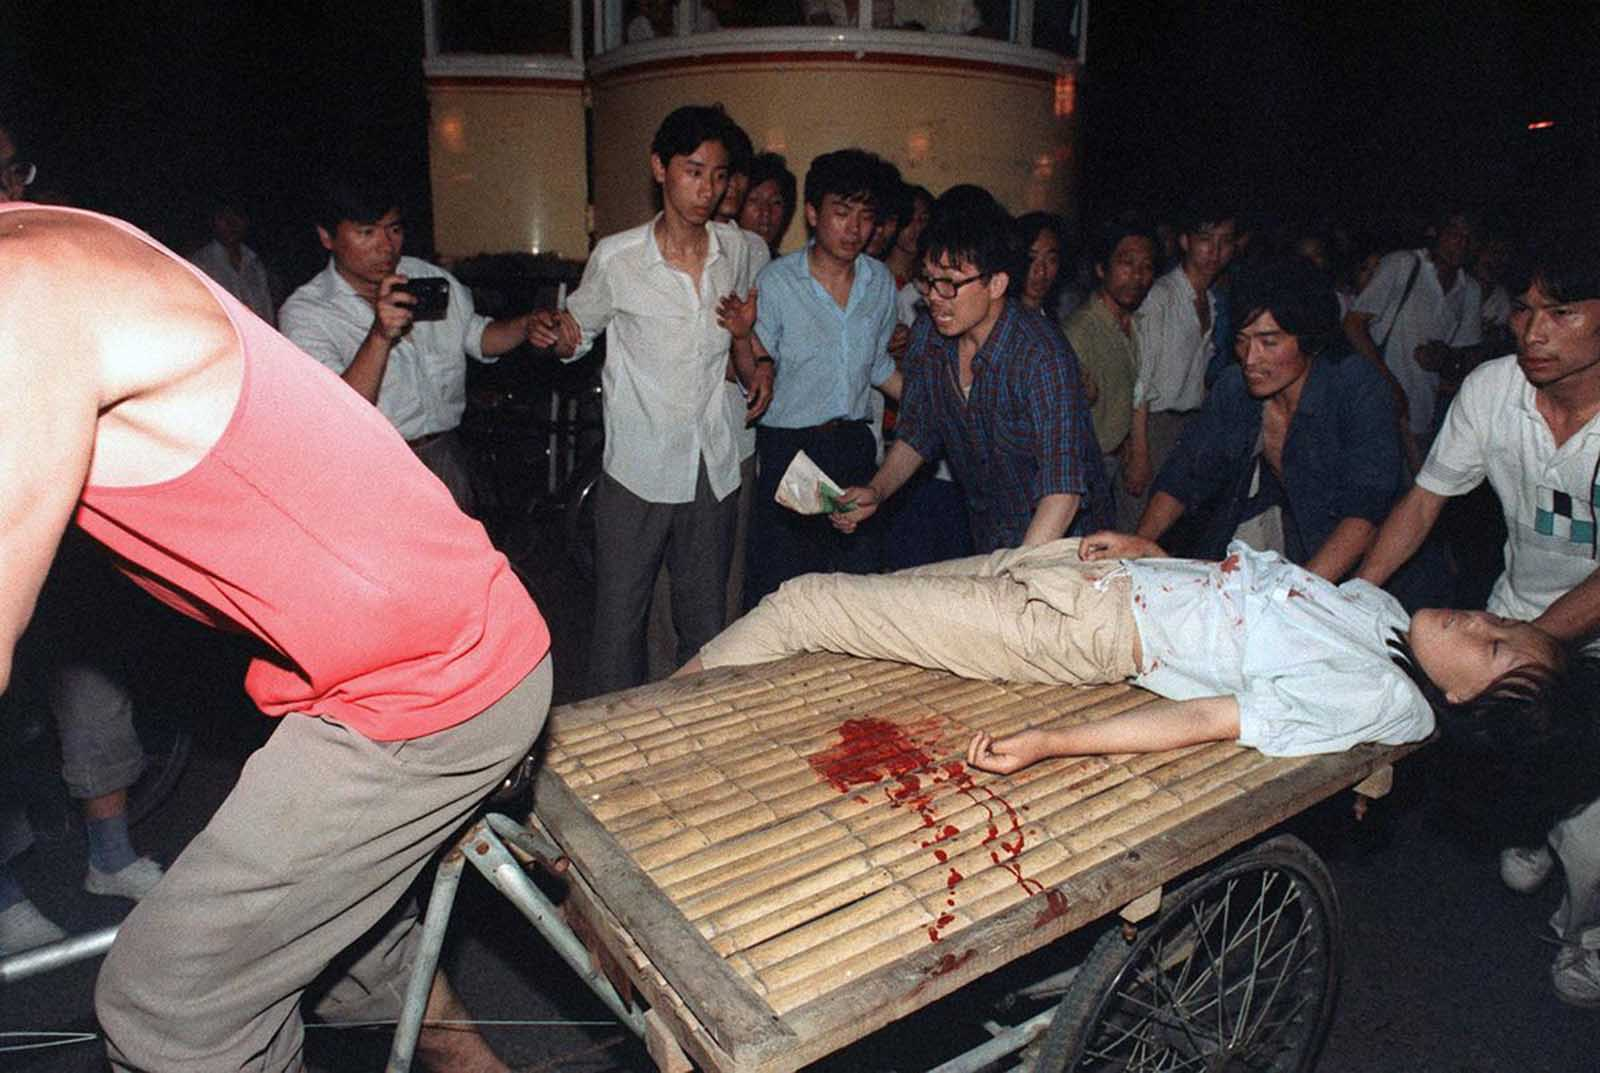 A girl wounded during the clash between the army and students near Tiananmen Square is carried out by a cart, on June 4, 1989.